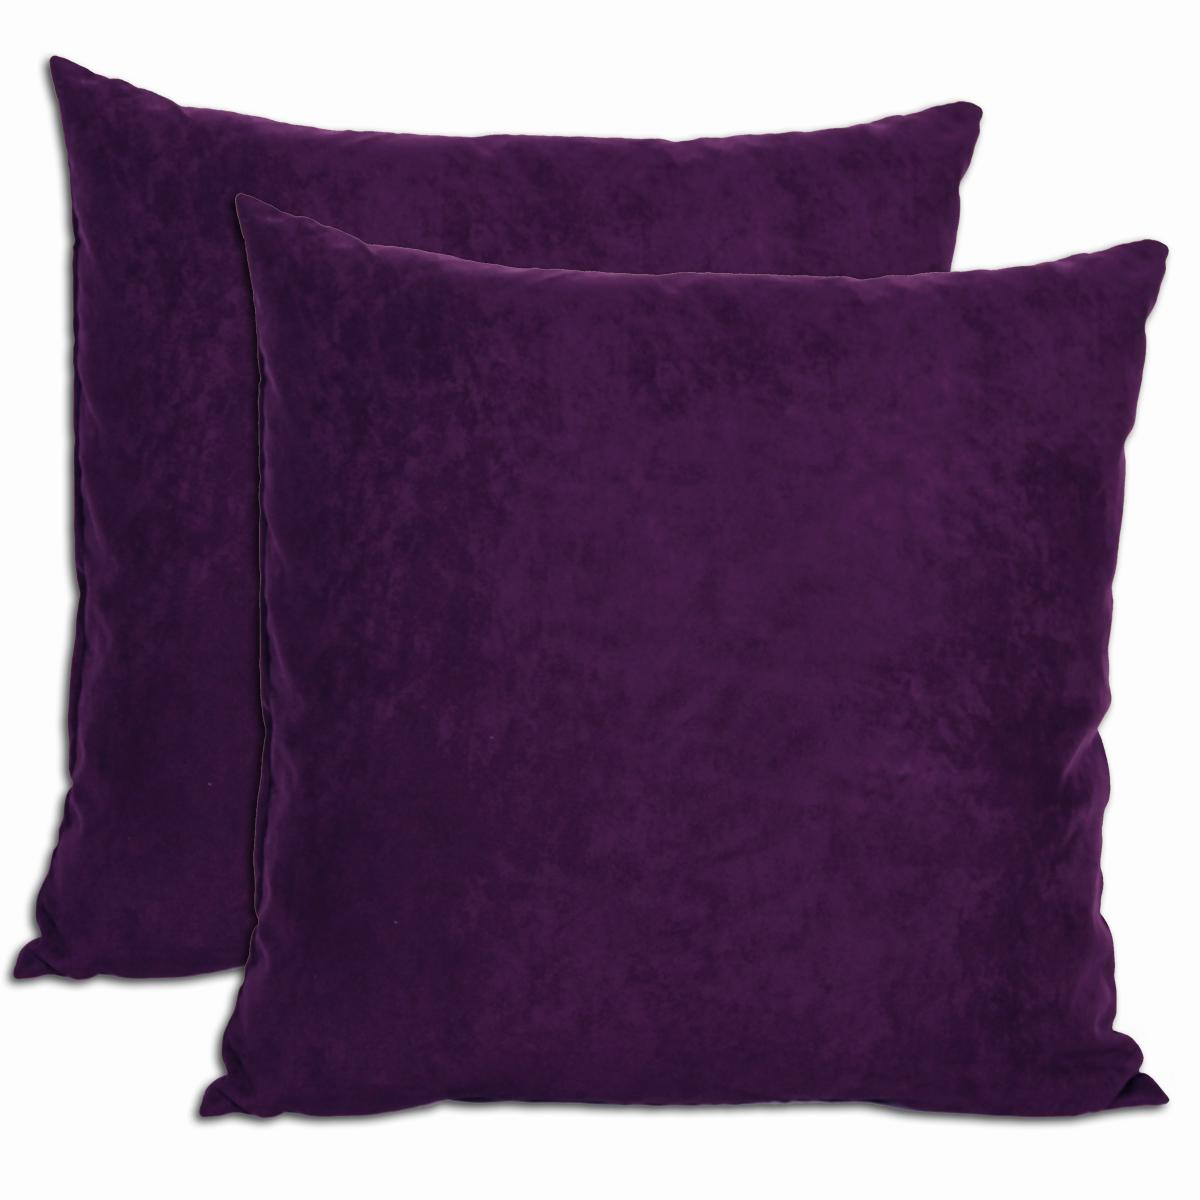 Purple Microsuede Feather And Down Filled Throw Pillows Set Of 2 Free Shipping On Orders Over 45 5643374